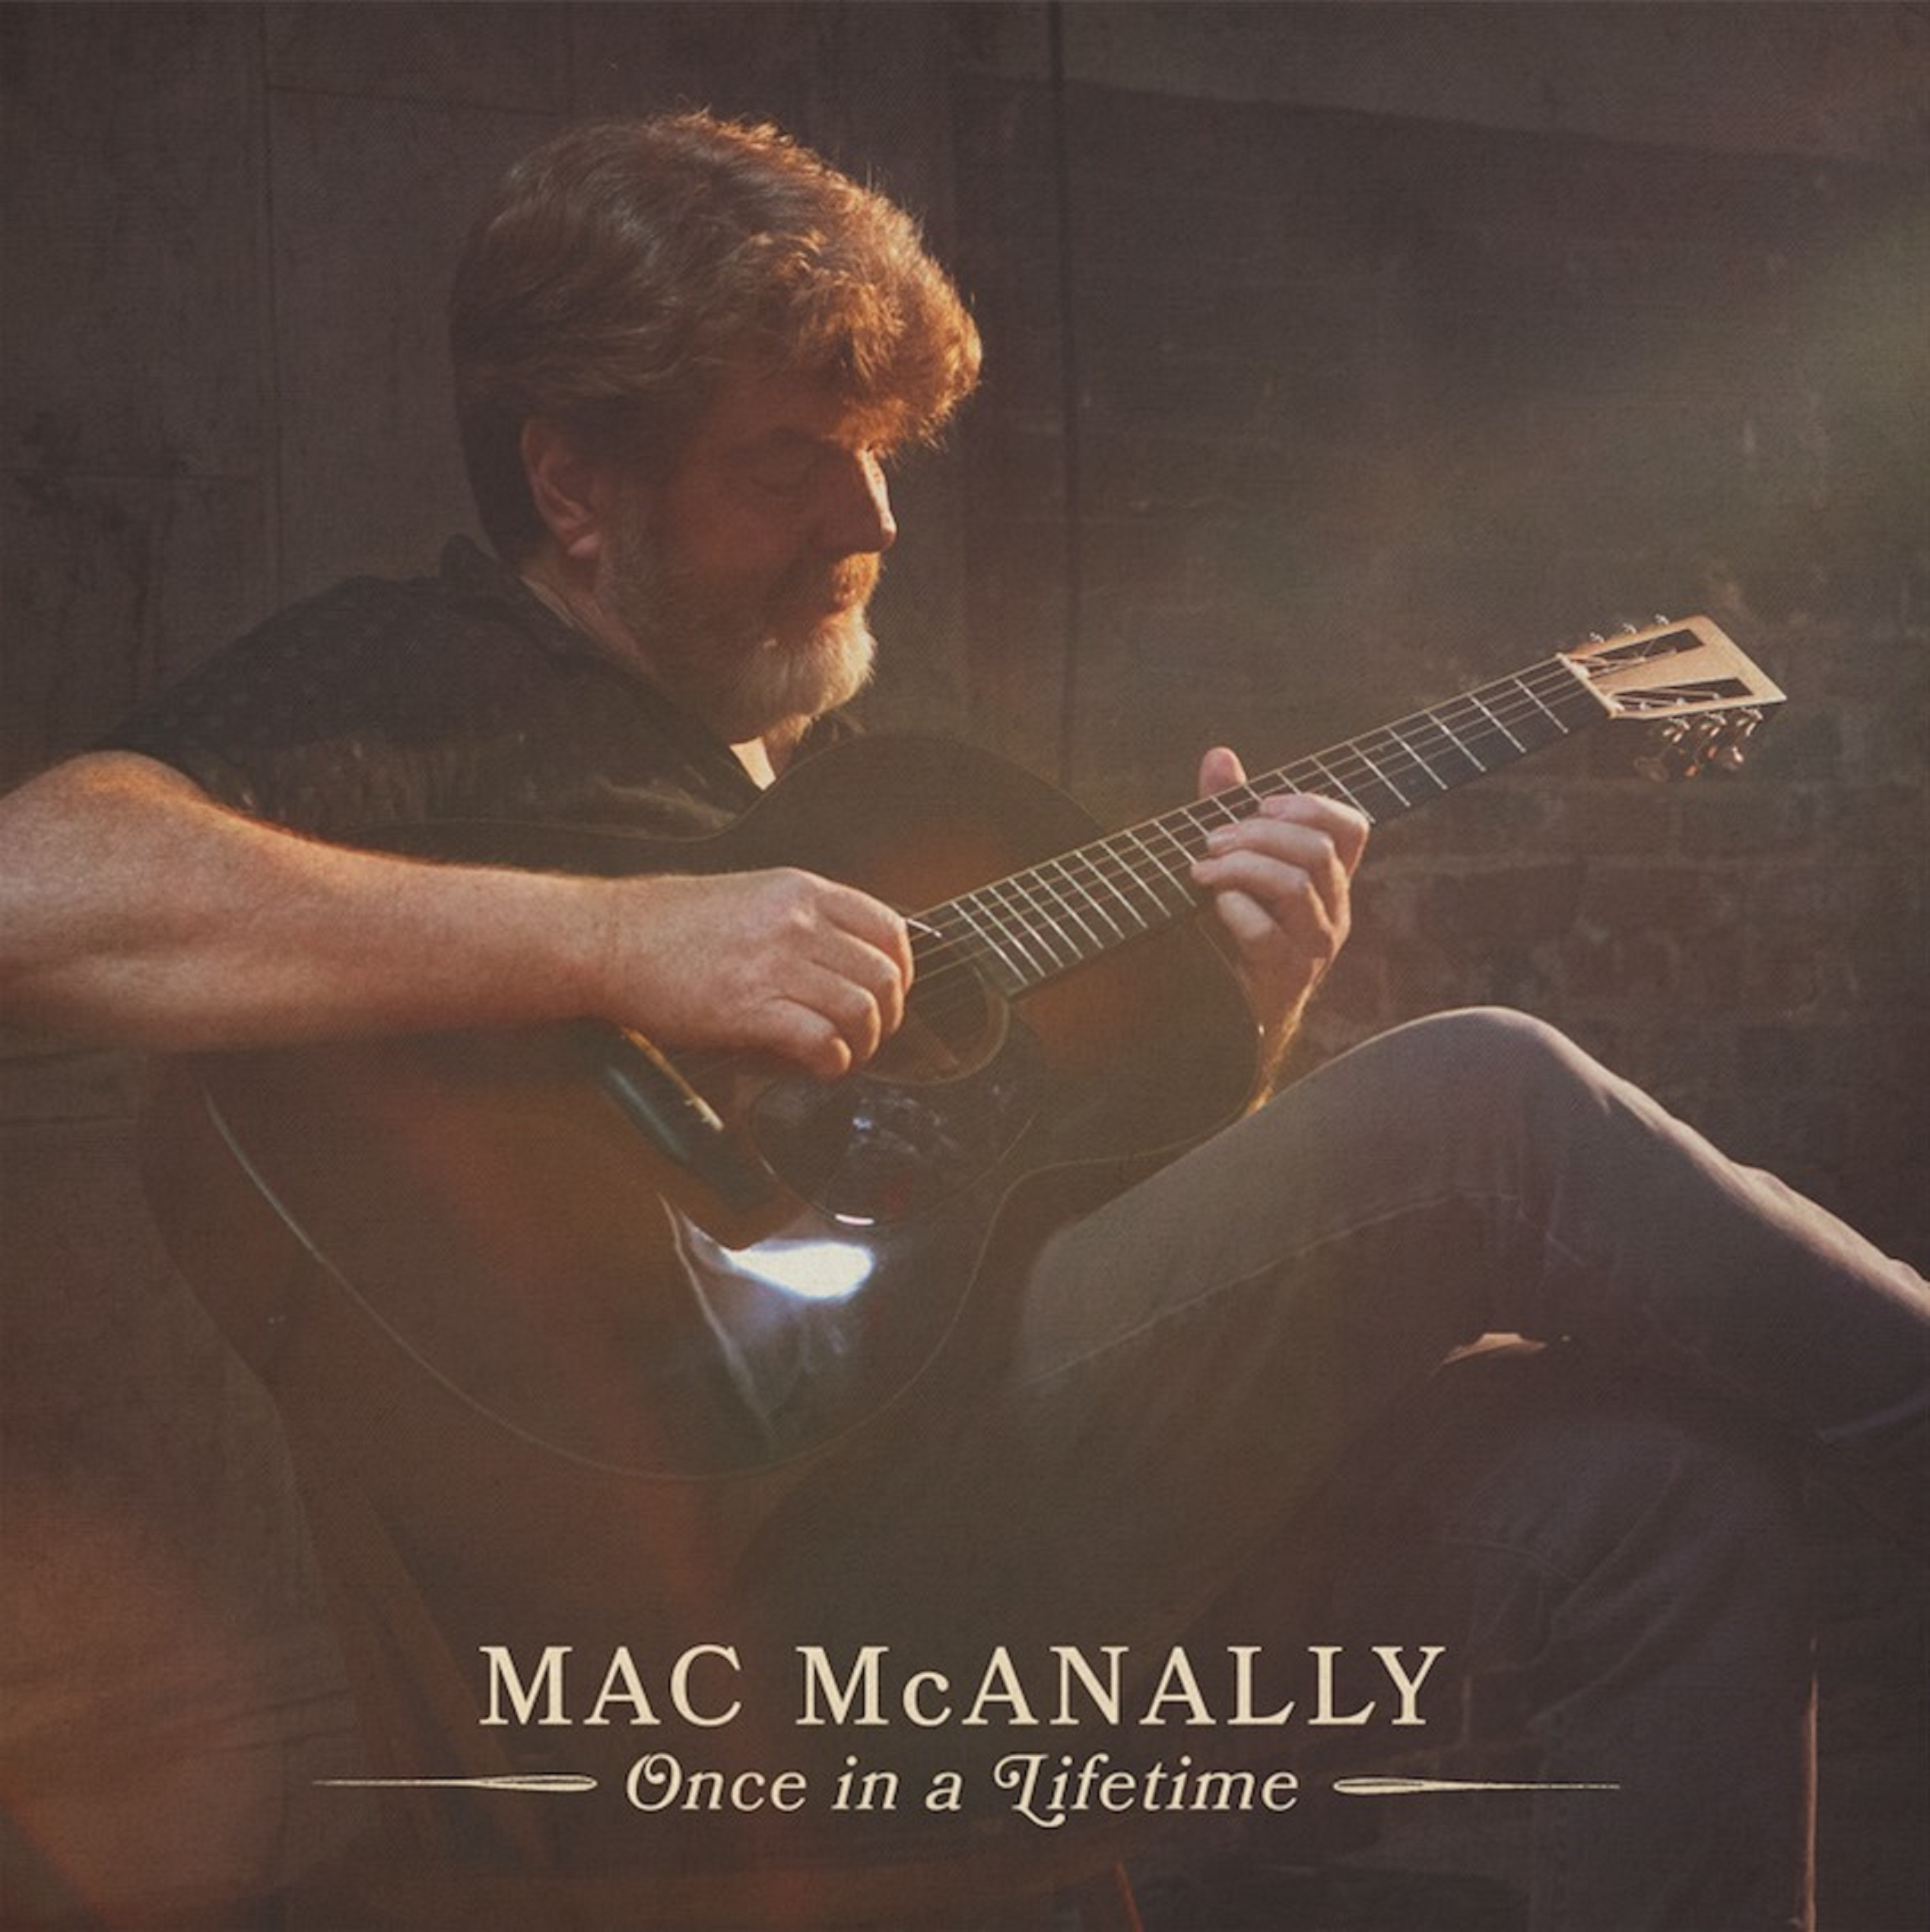 Mac McAnally To Release New Album Once in a Lifetime On July 31st